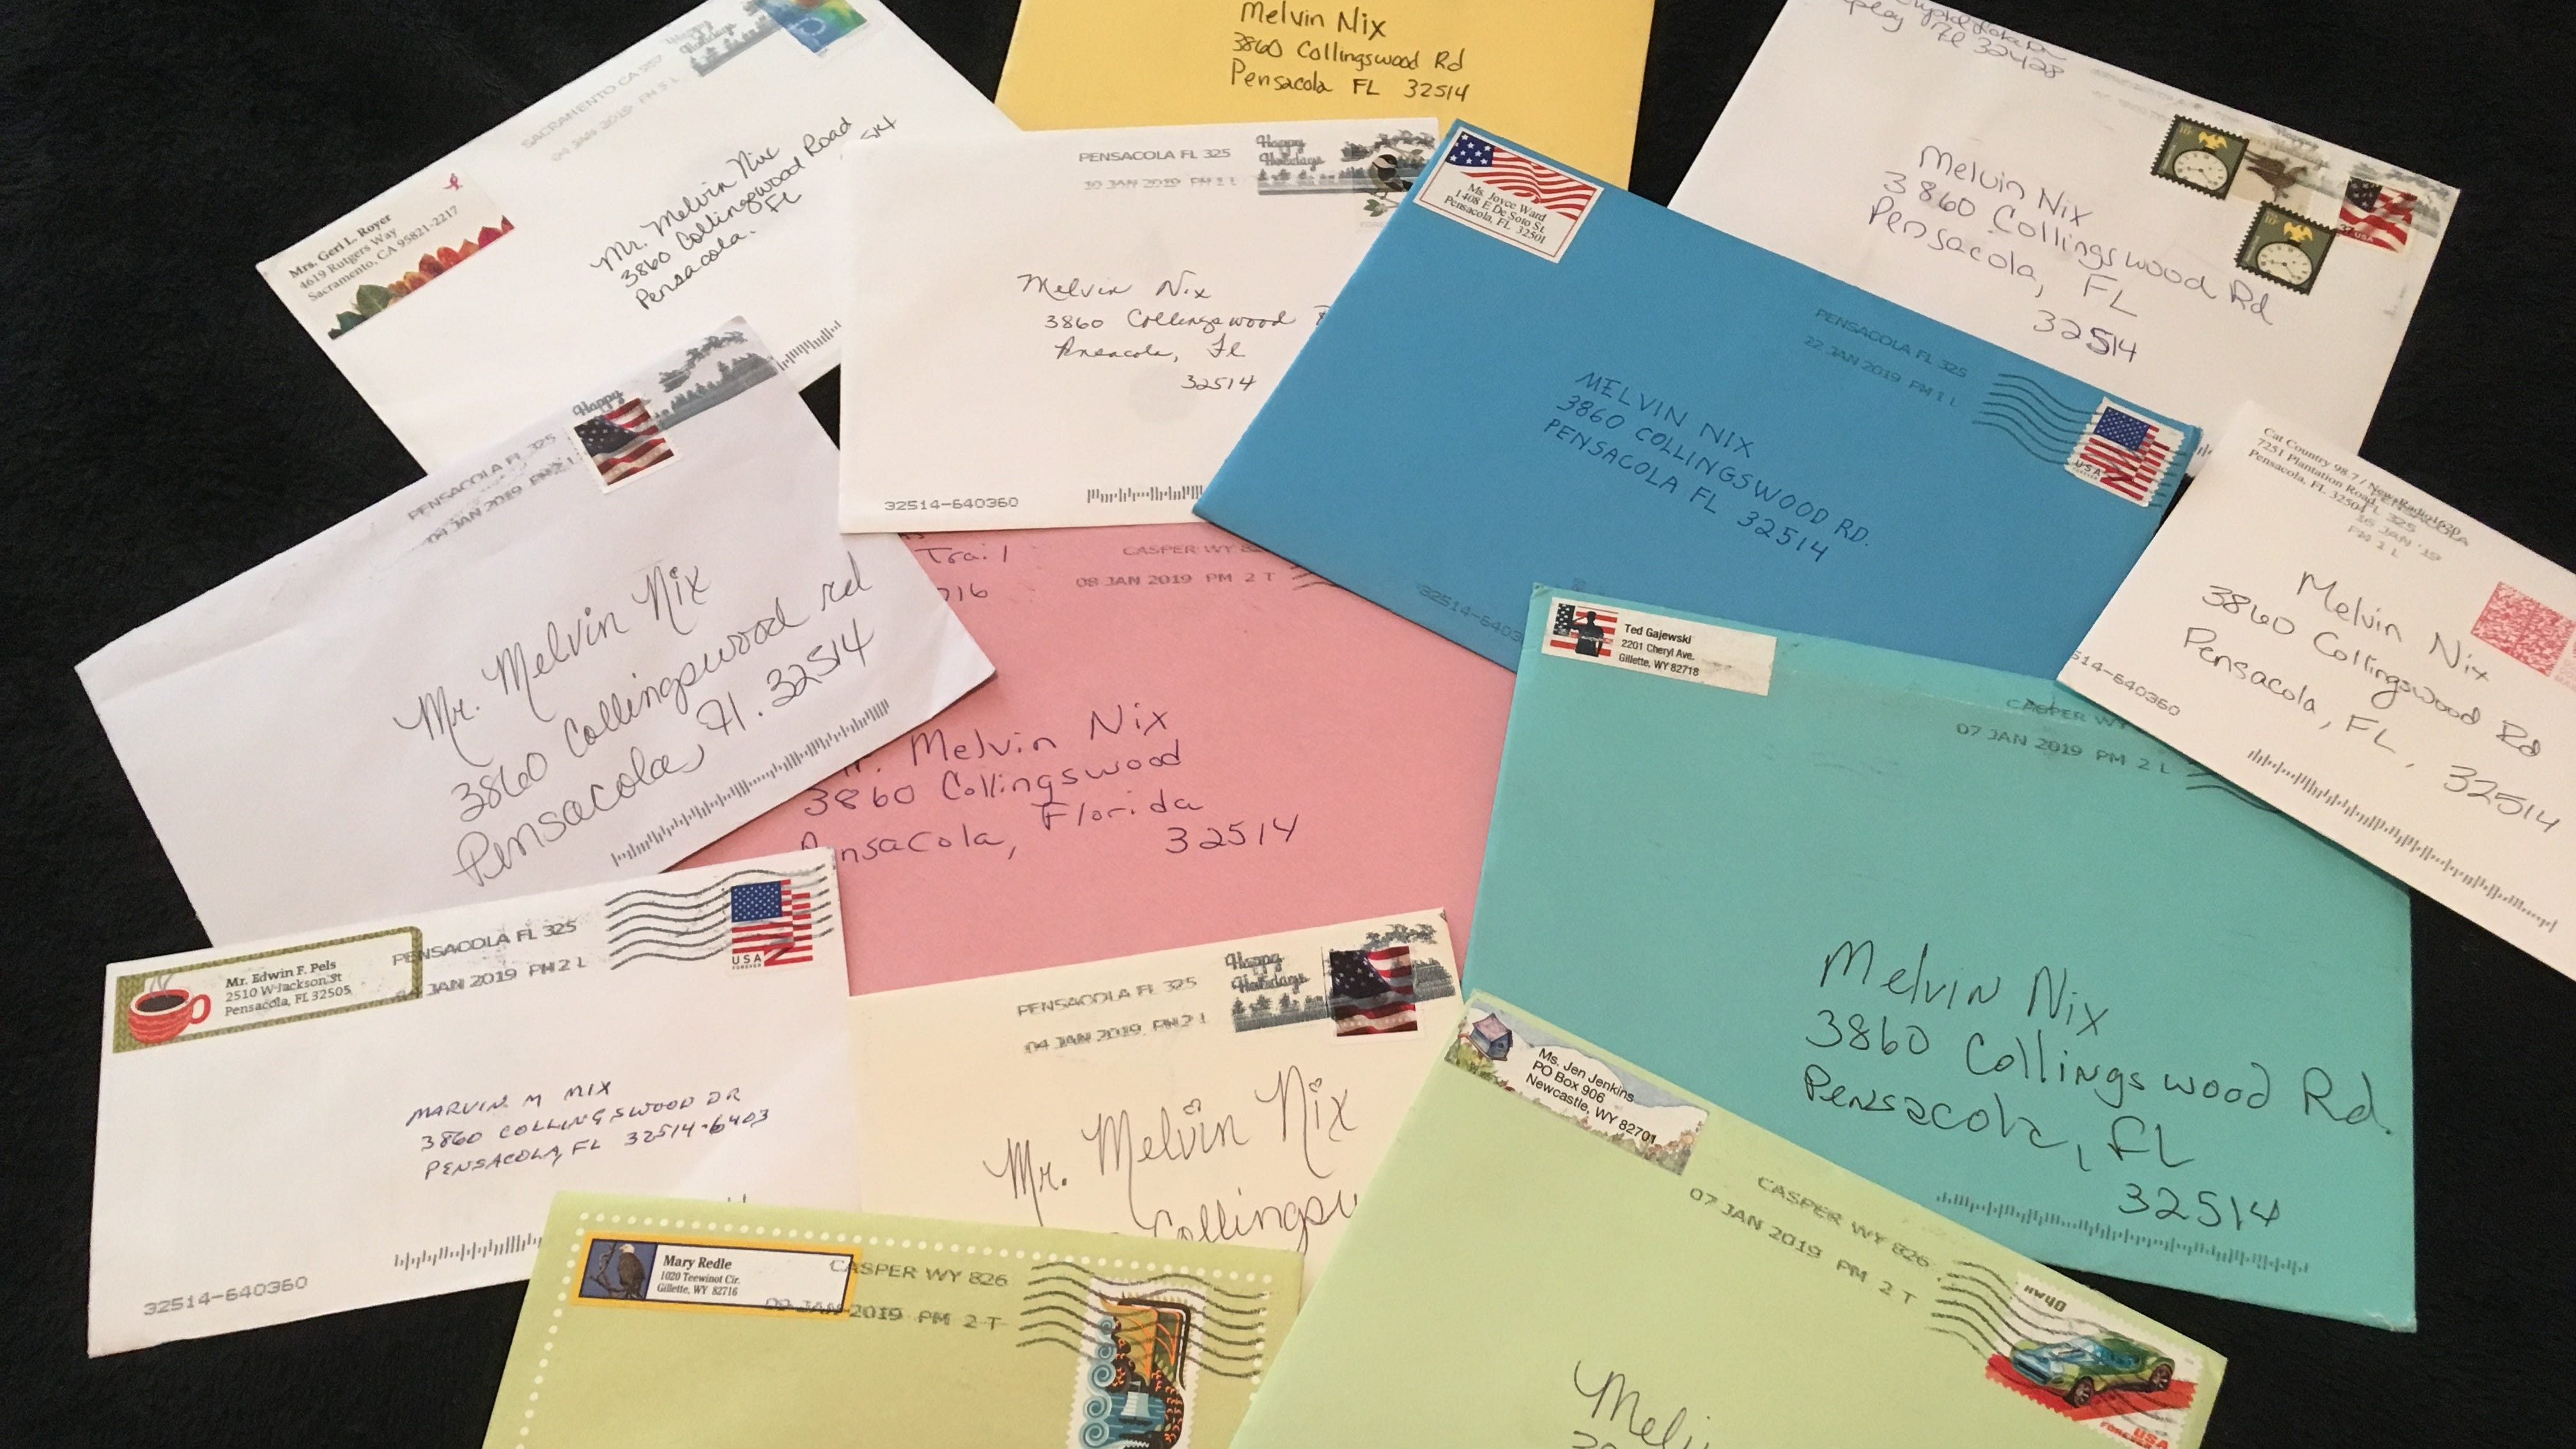 Pensacola Couple Asks Public For Surprise Bday Cards To Wwii Vet Father